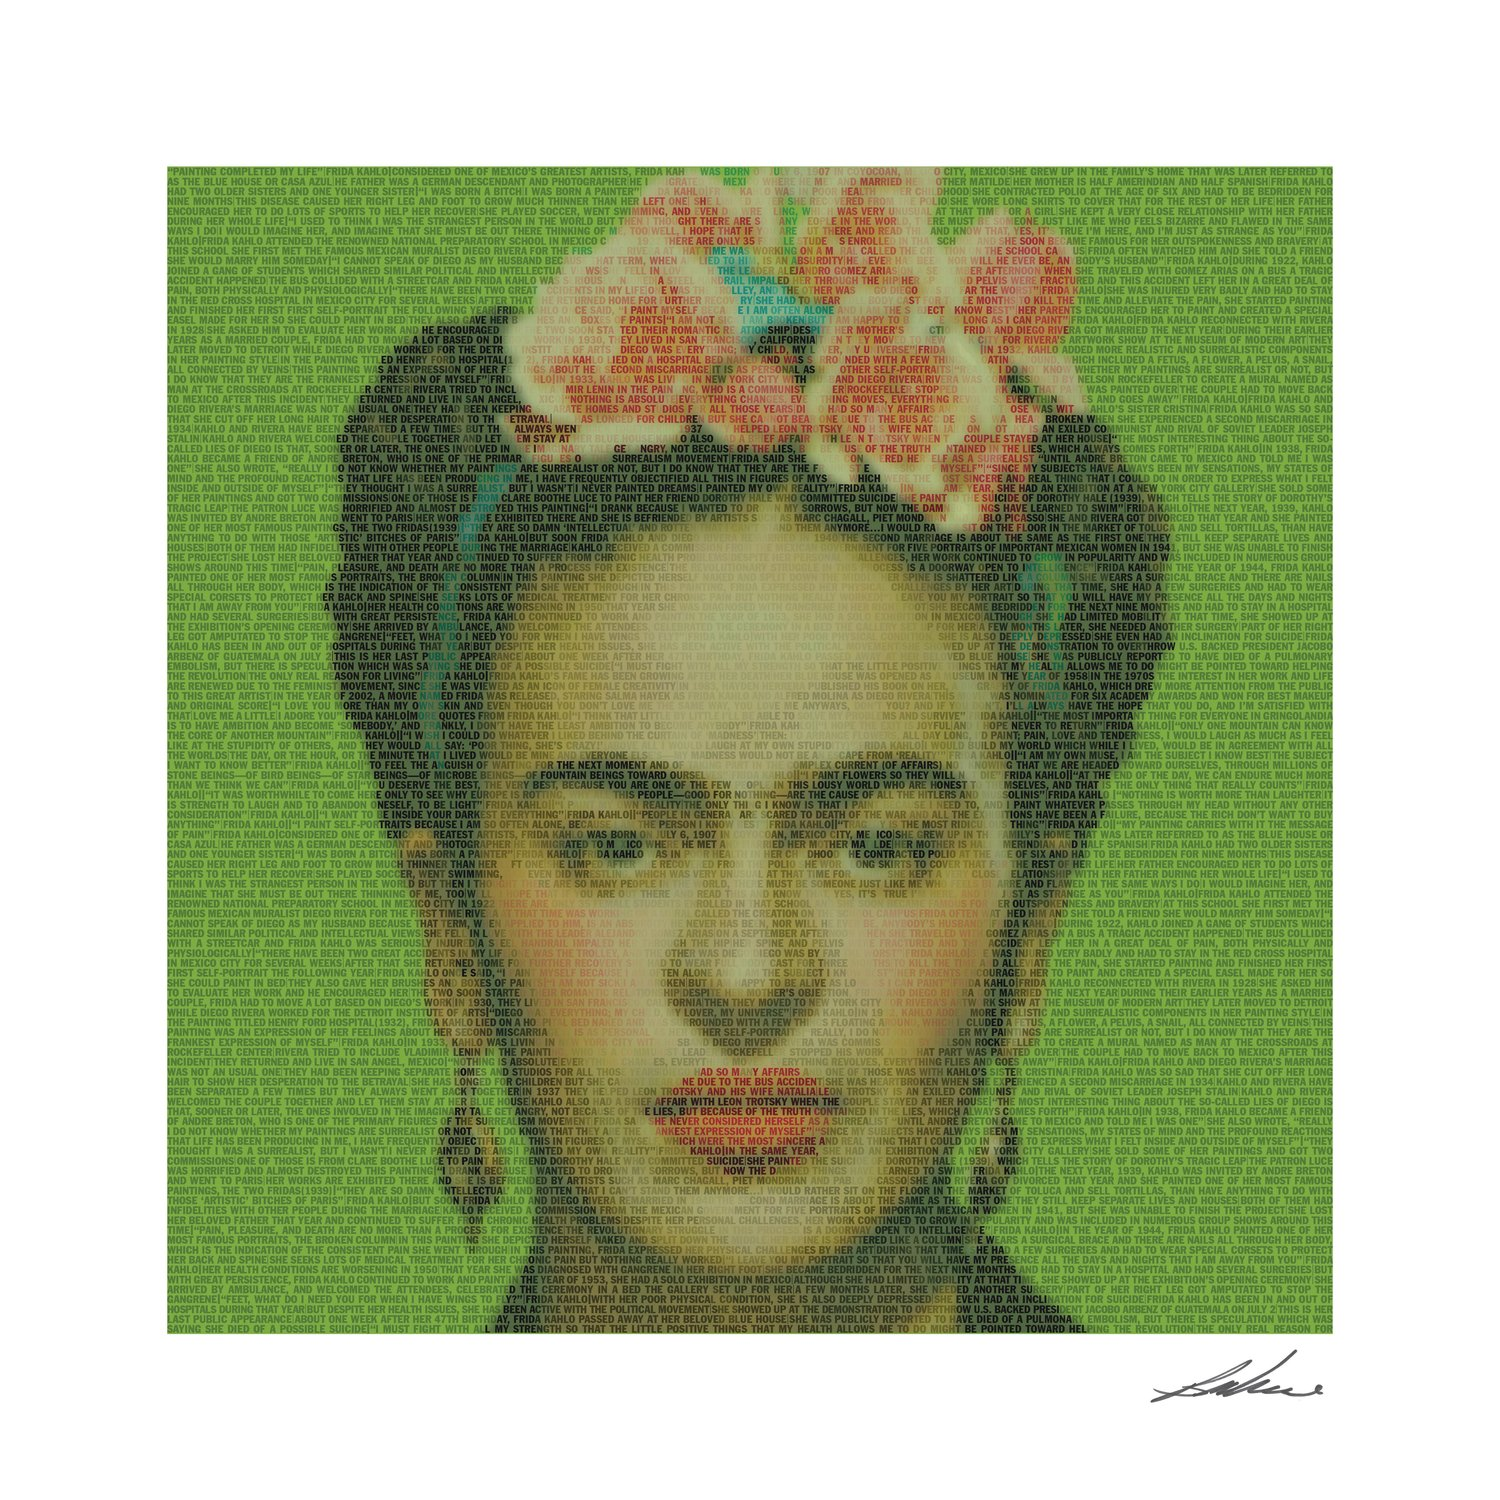 A portrait of Frida Kahlo is part of the works by Bryce Culverhouse.